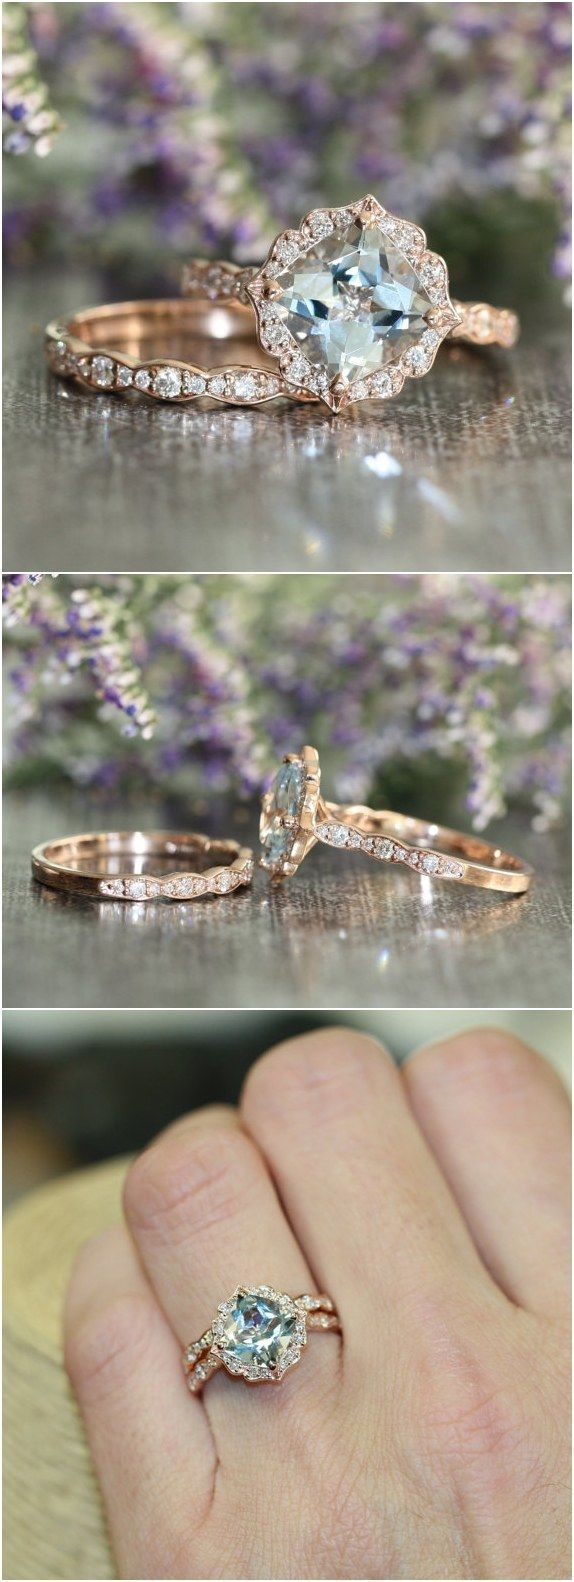 Vintage Floral Aquamarine Engagement Ring and Scalloped Diamond Wedding Band Bridal Set / http://www.deerpearlflowers.com/floral-inspired-engagement-rings/